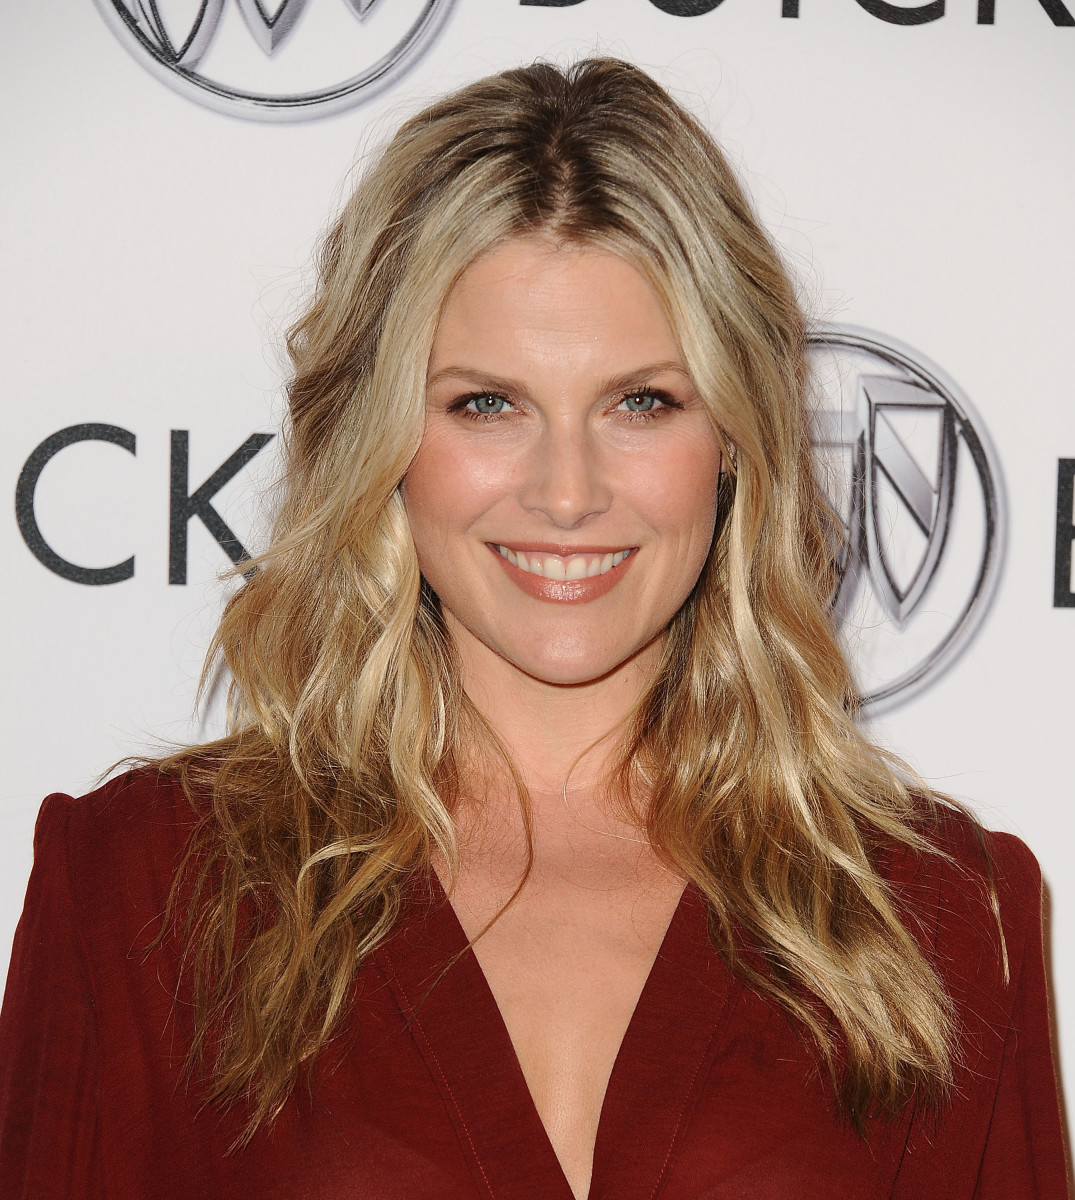 Photos Ali Larter nude photos 2019